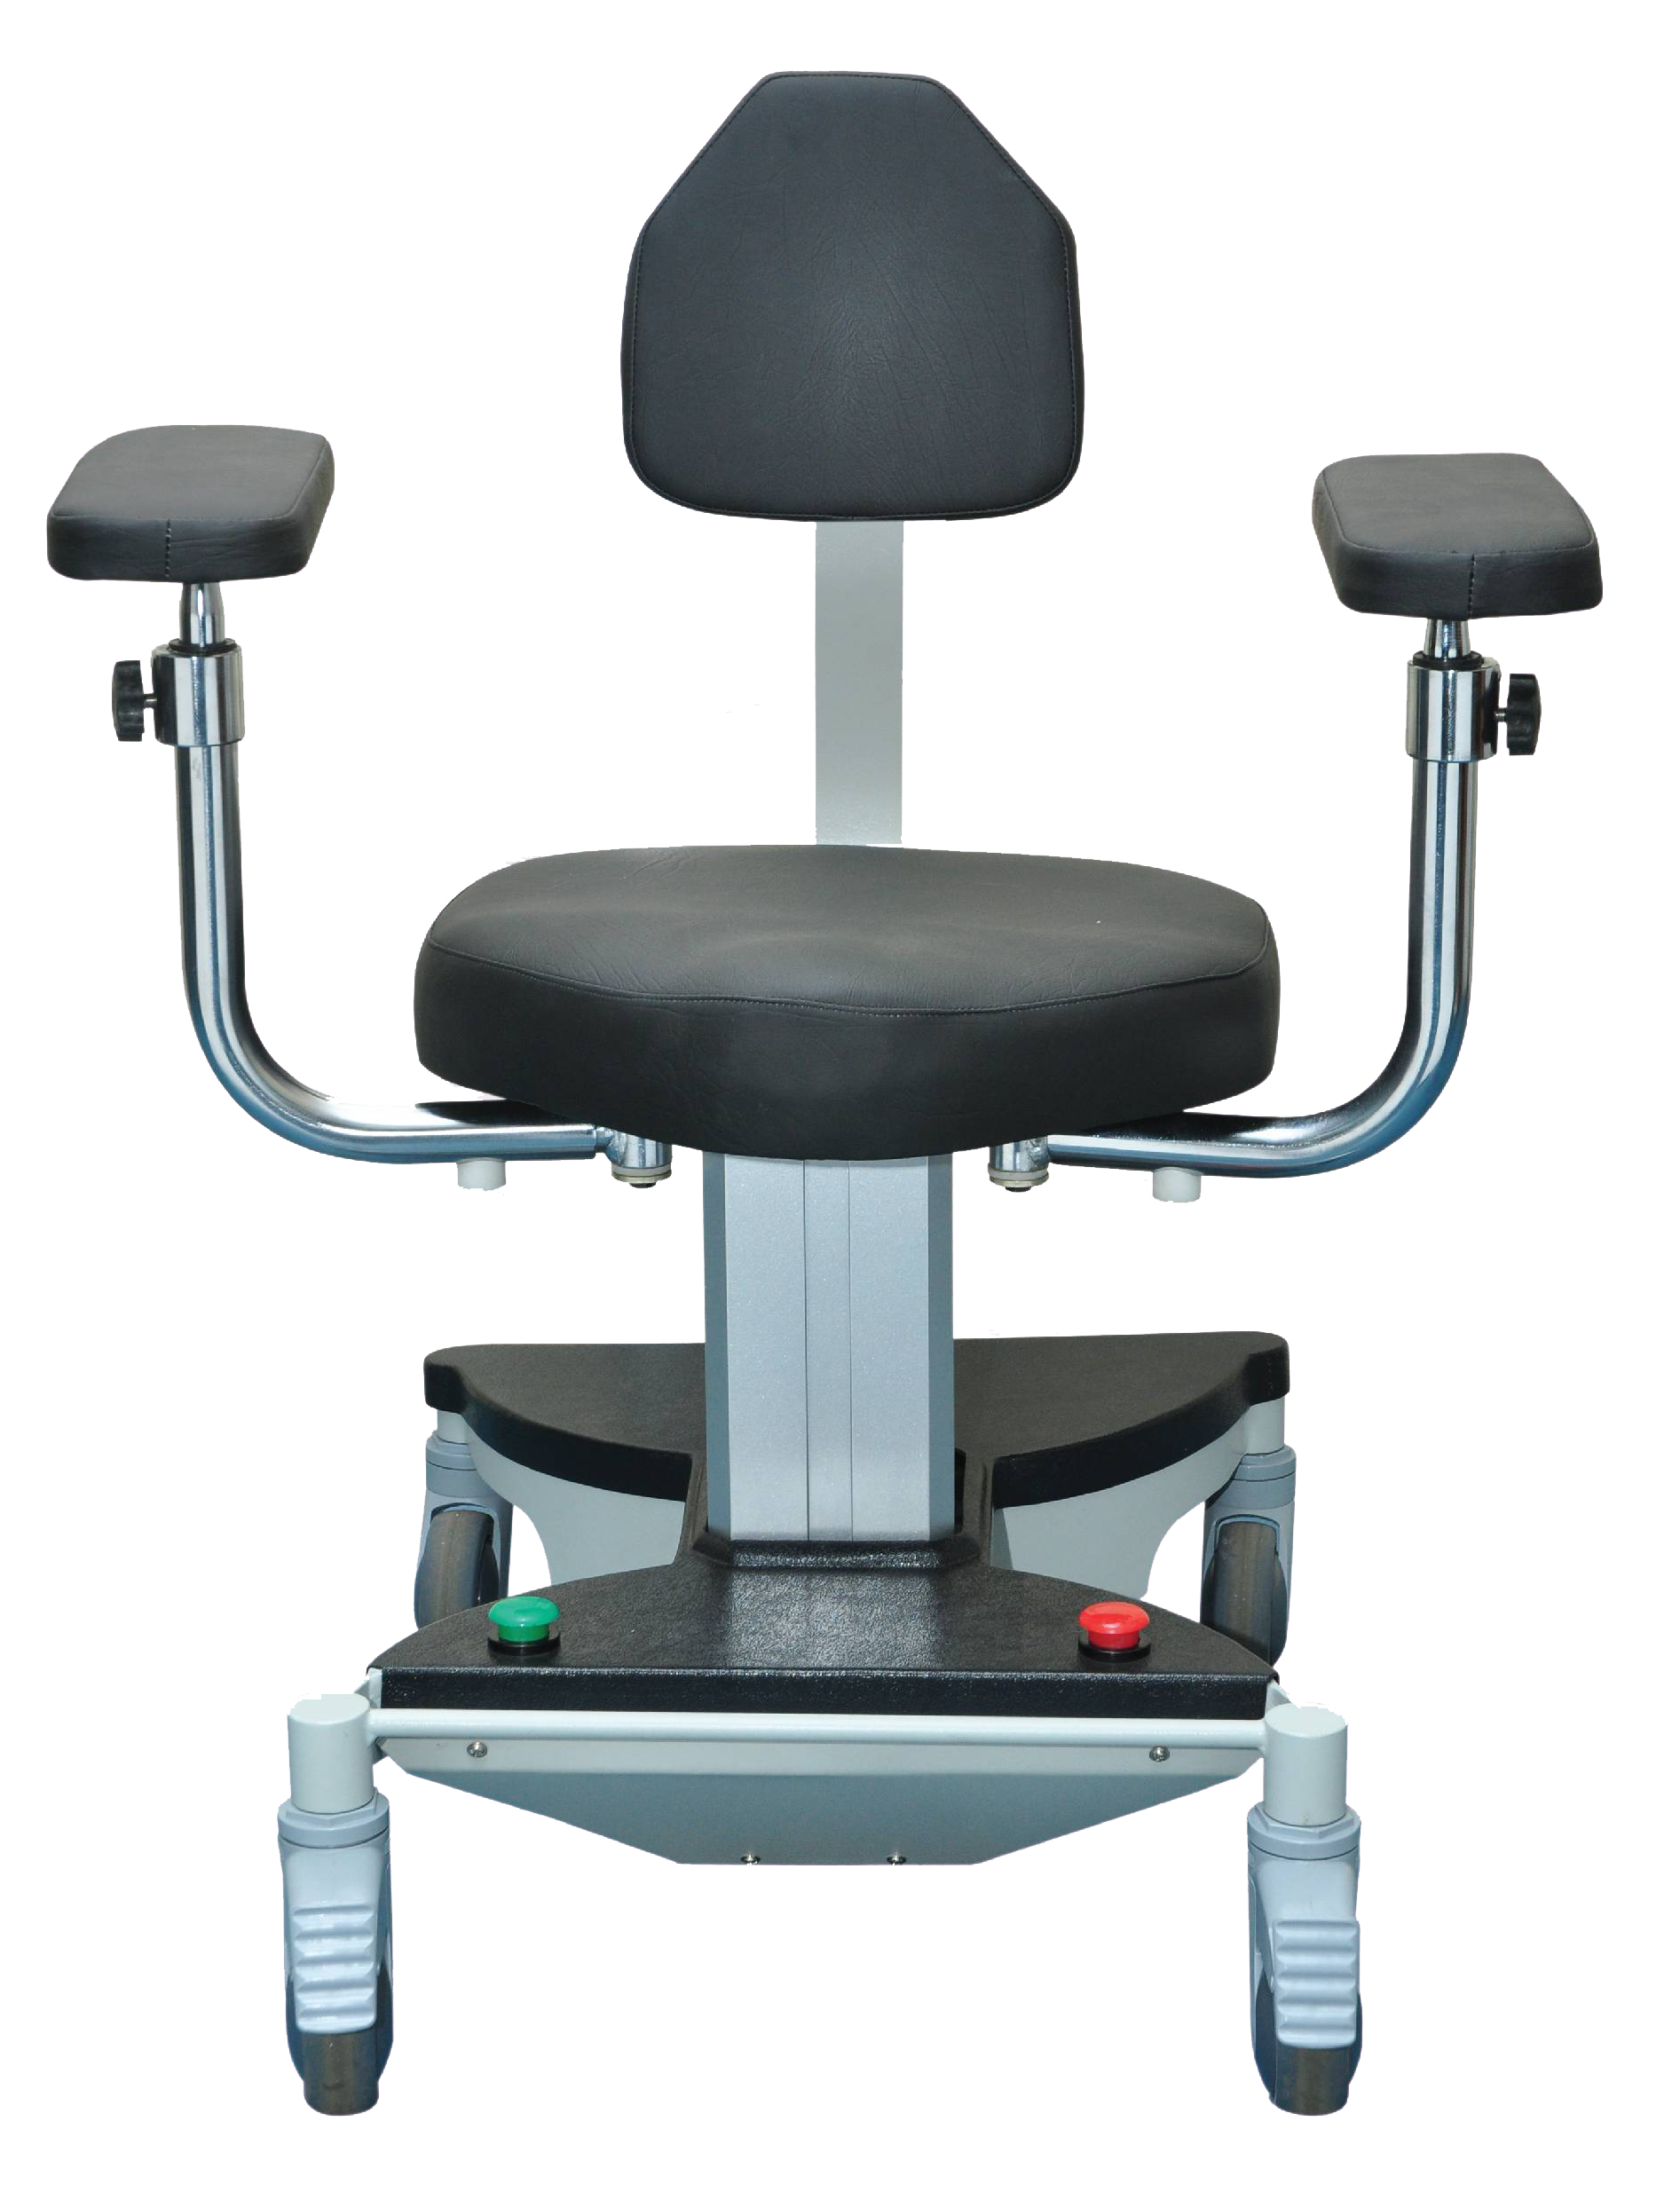 Motorized Surgeon Stool Surgeon Unit For Ophthalmic Surgery Model : AAMST 2000